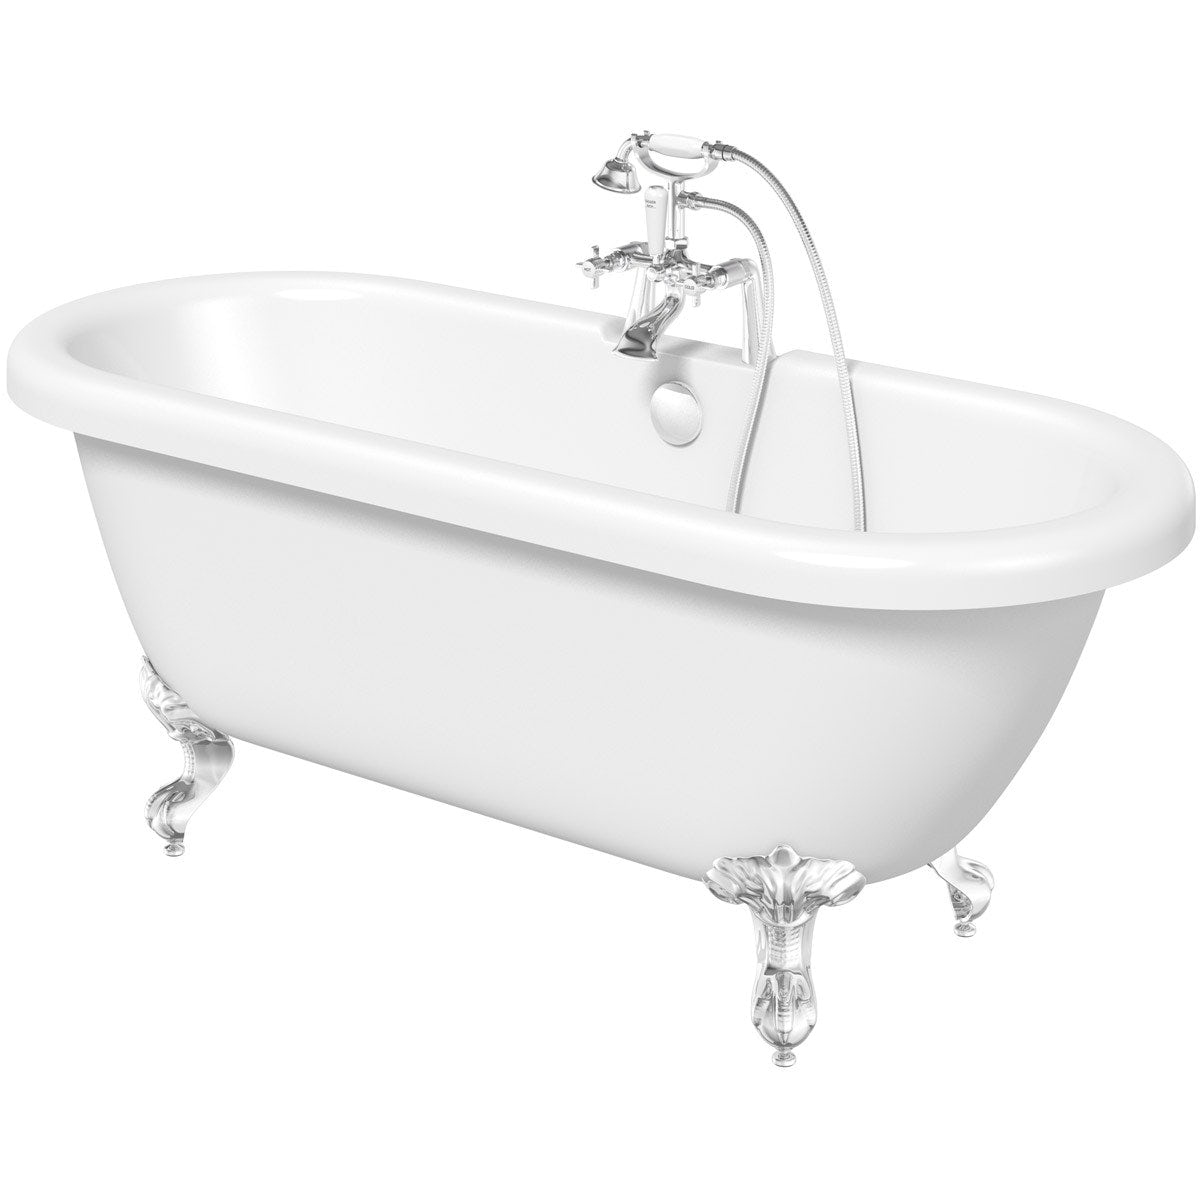 The Bath Co Dulwich Roll Top Bath With Ball And Claw Feet Offer Pack Victoriaplum Com